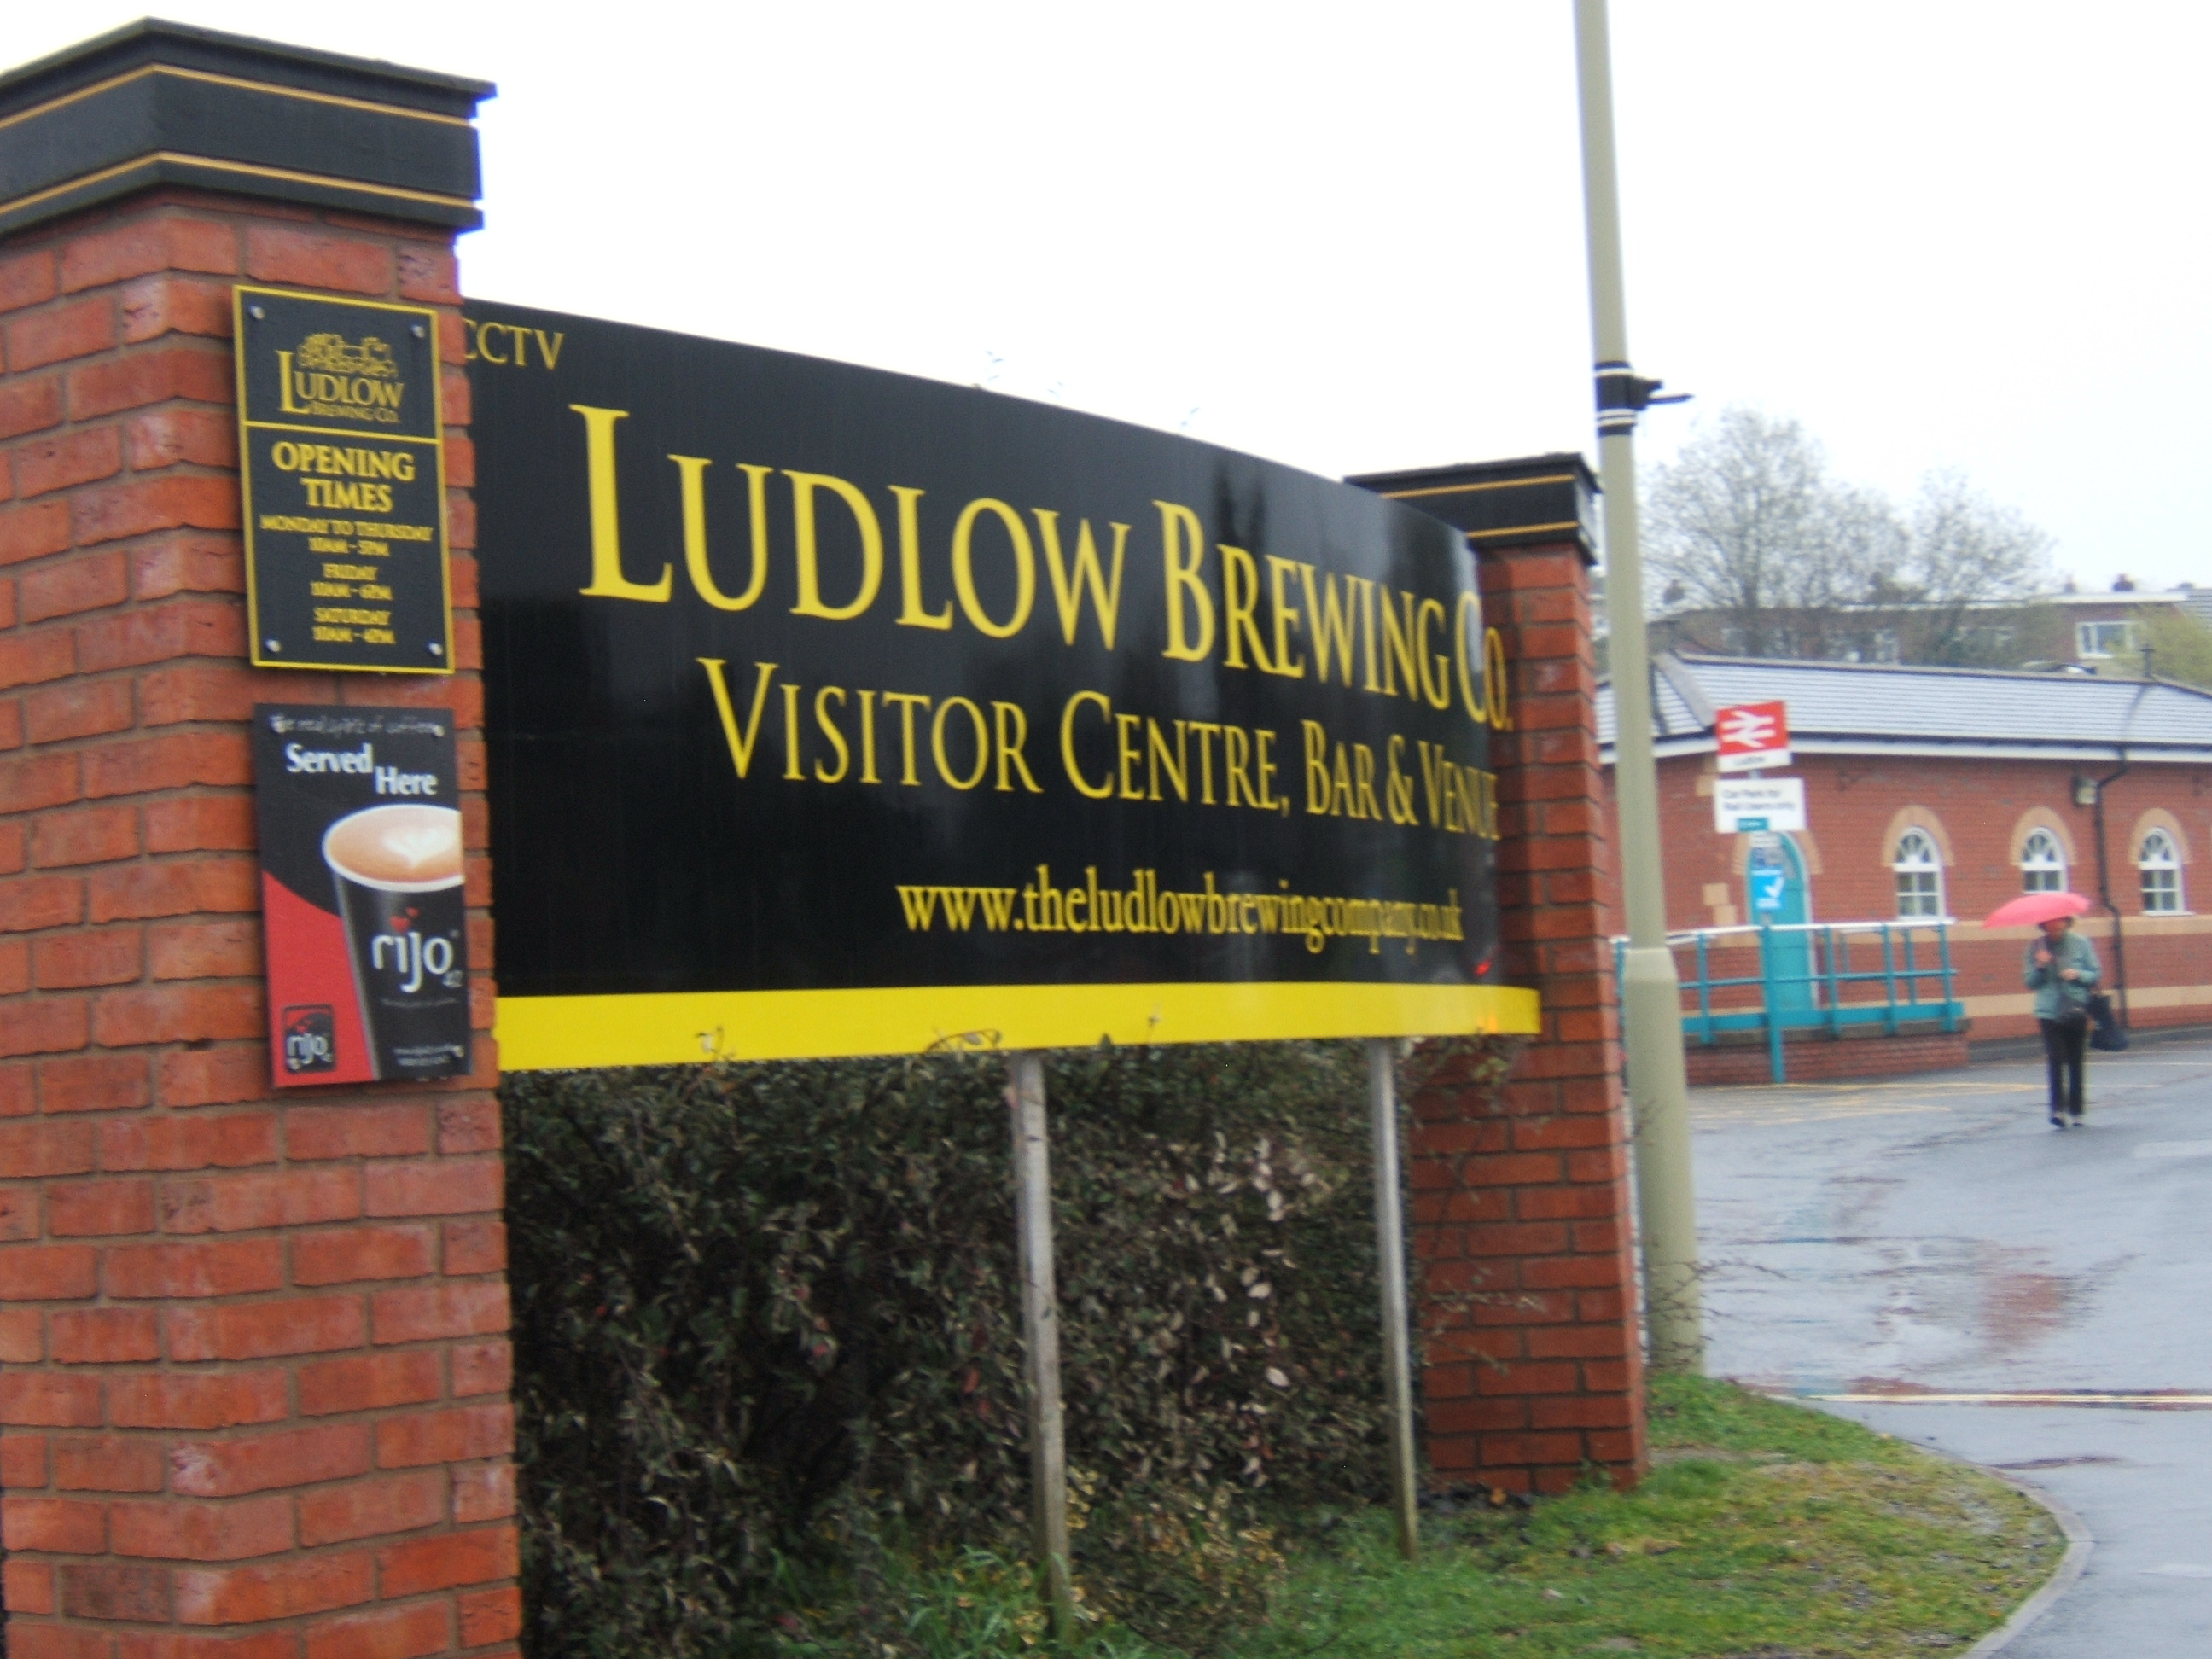 Ludlow Brewery Company